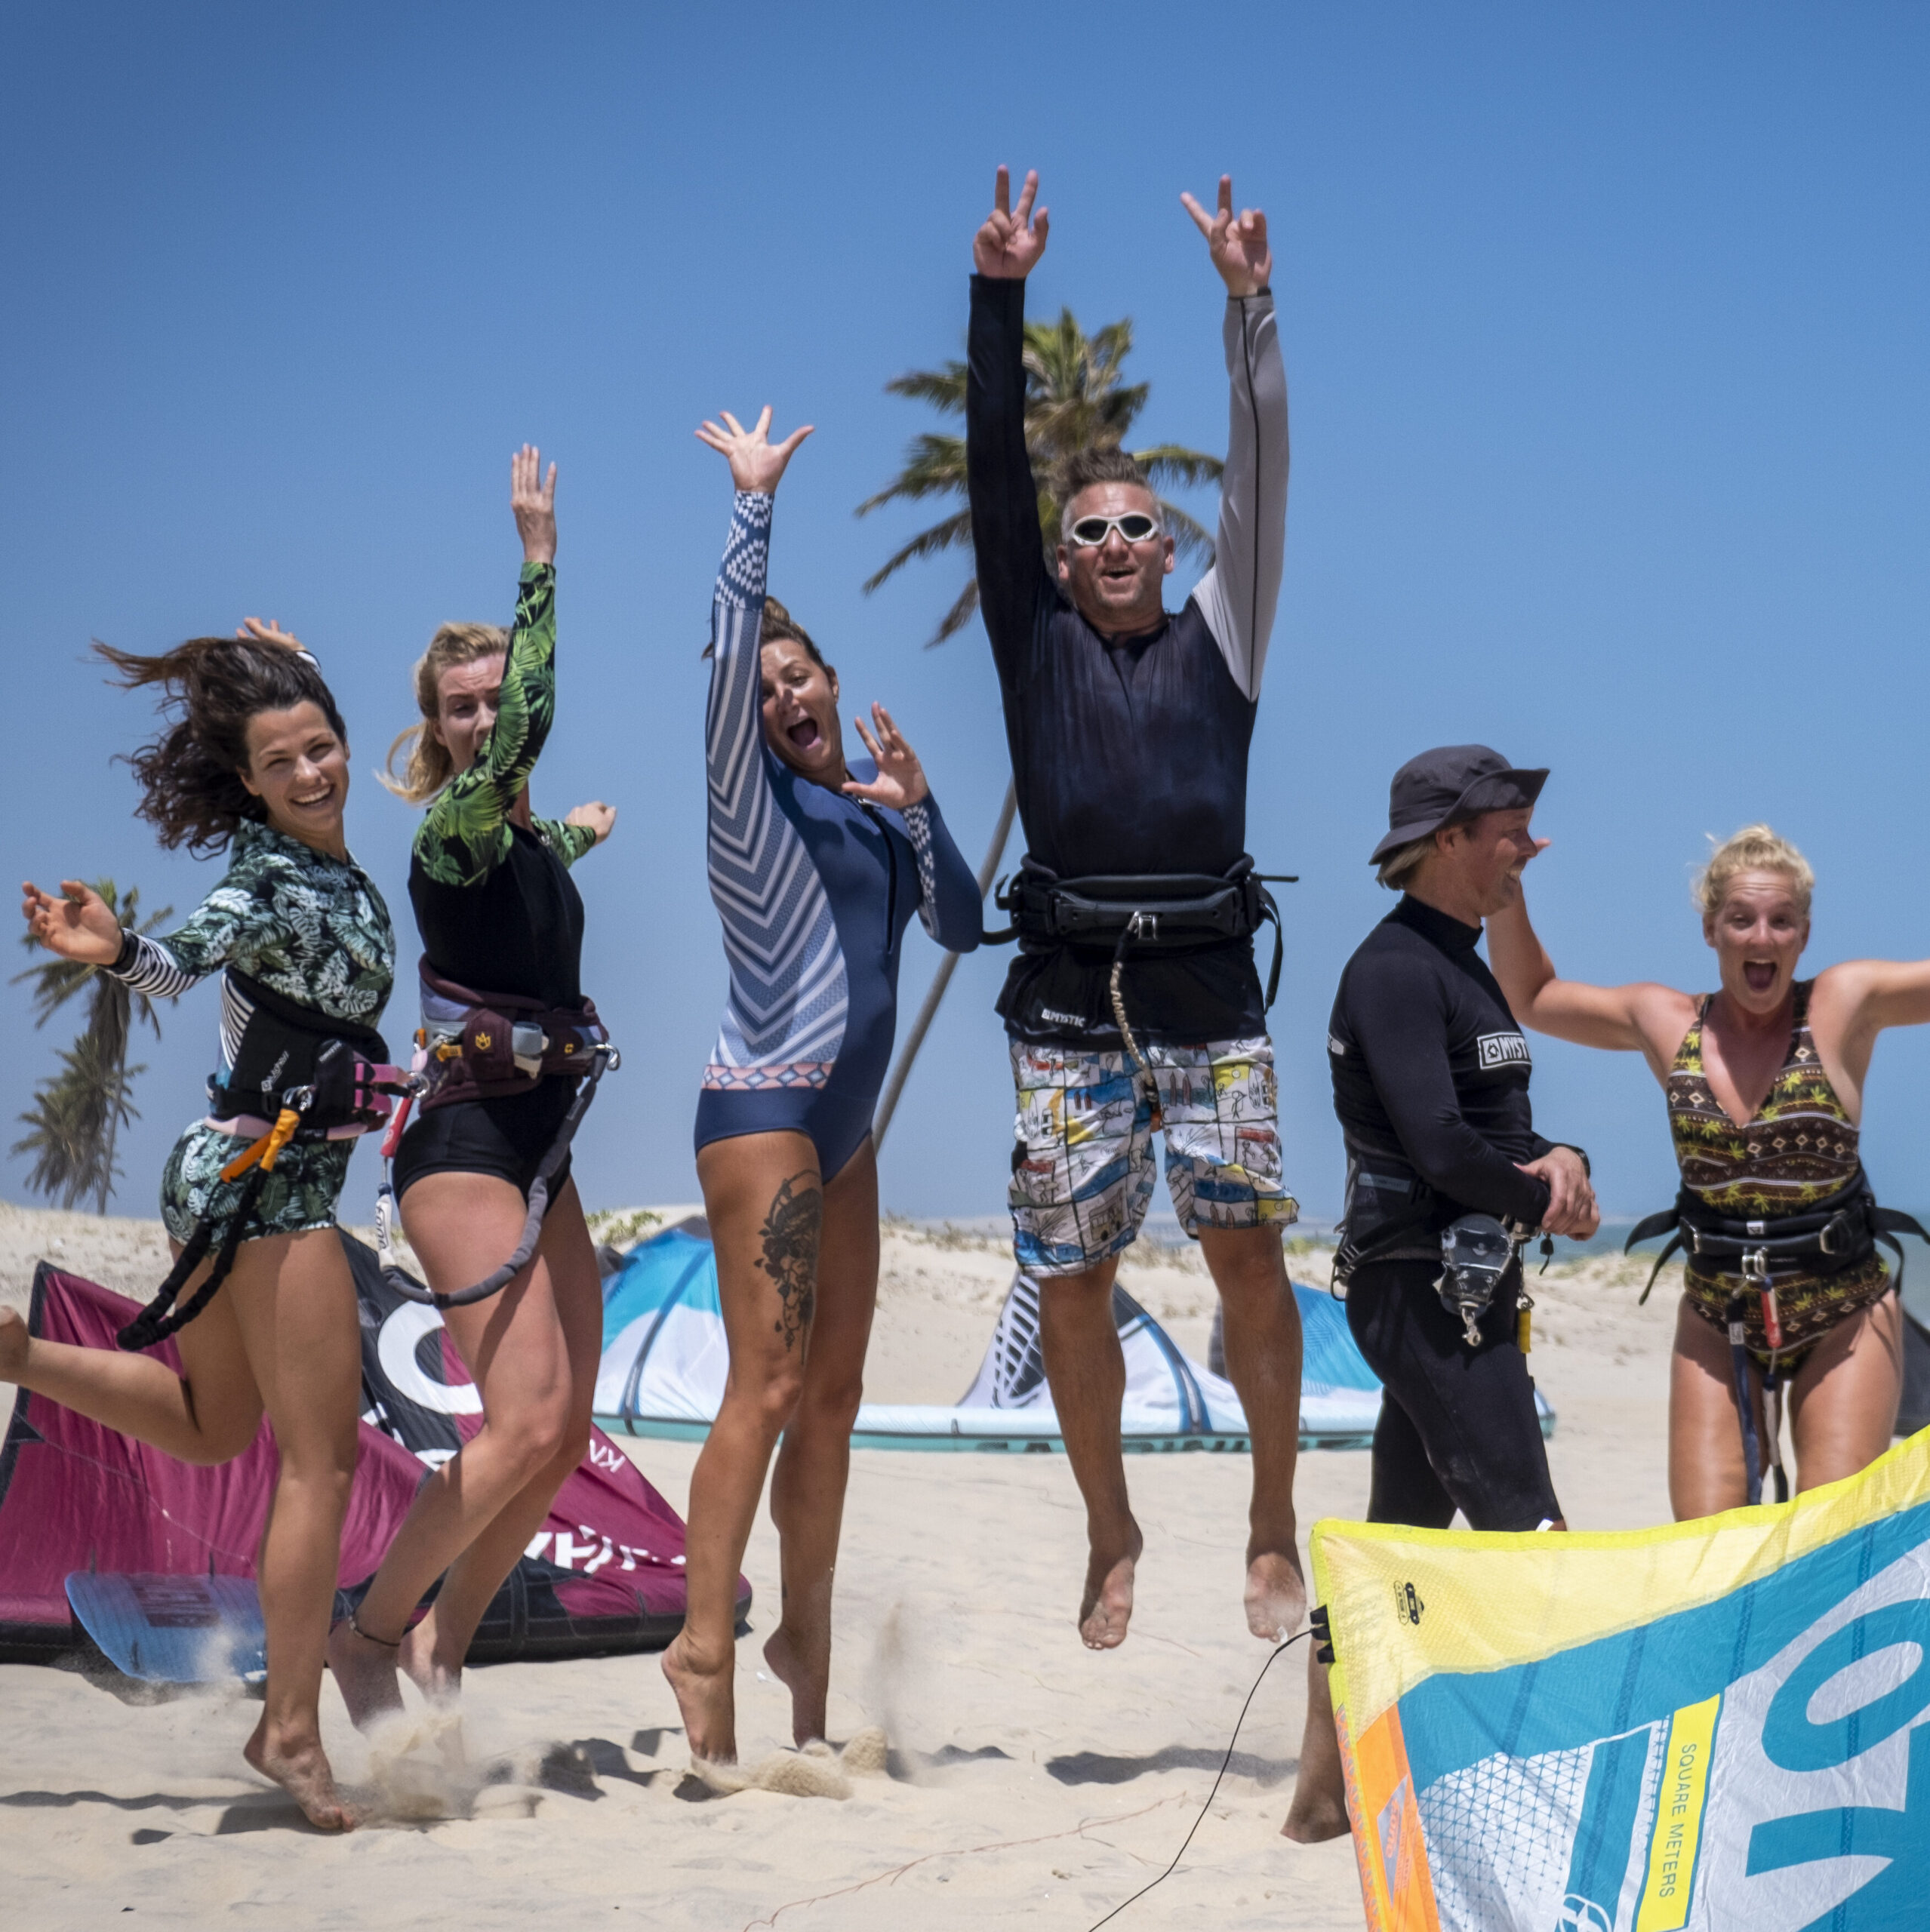 group-fun-kite-camps-kiteactive